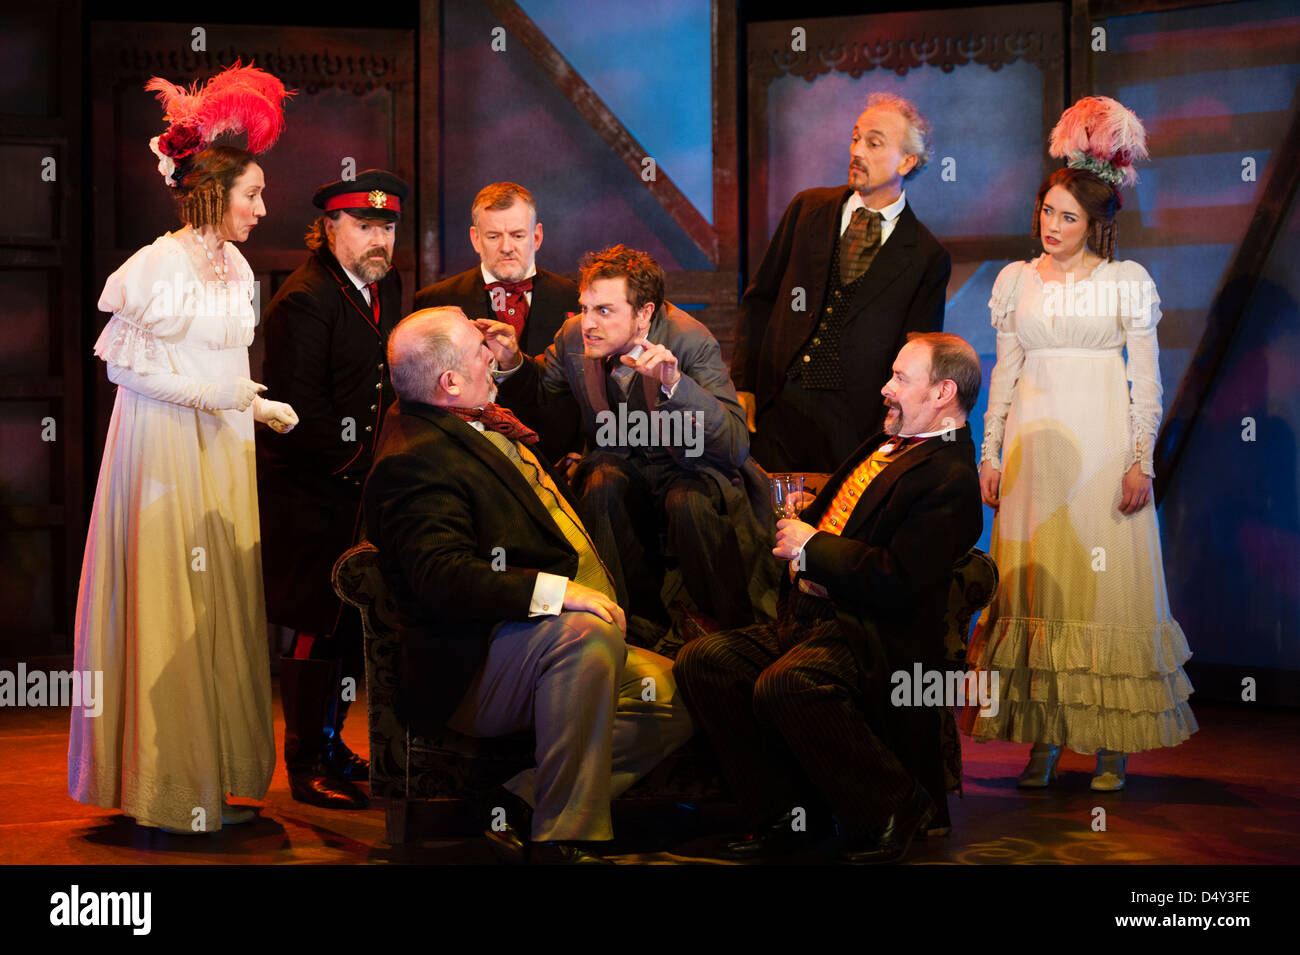 Professional actors on stage and in period costume performing in a production of The Government Inspector, Aberystwyth - Stock Image